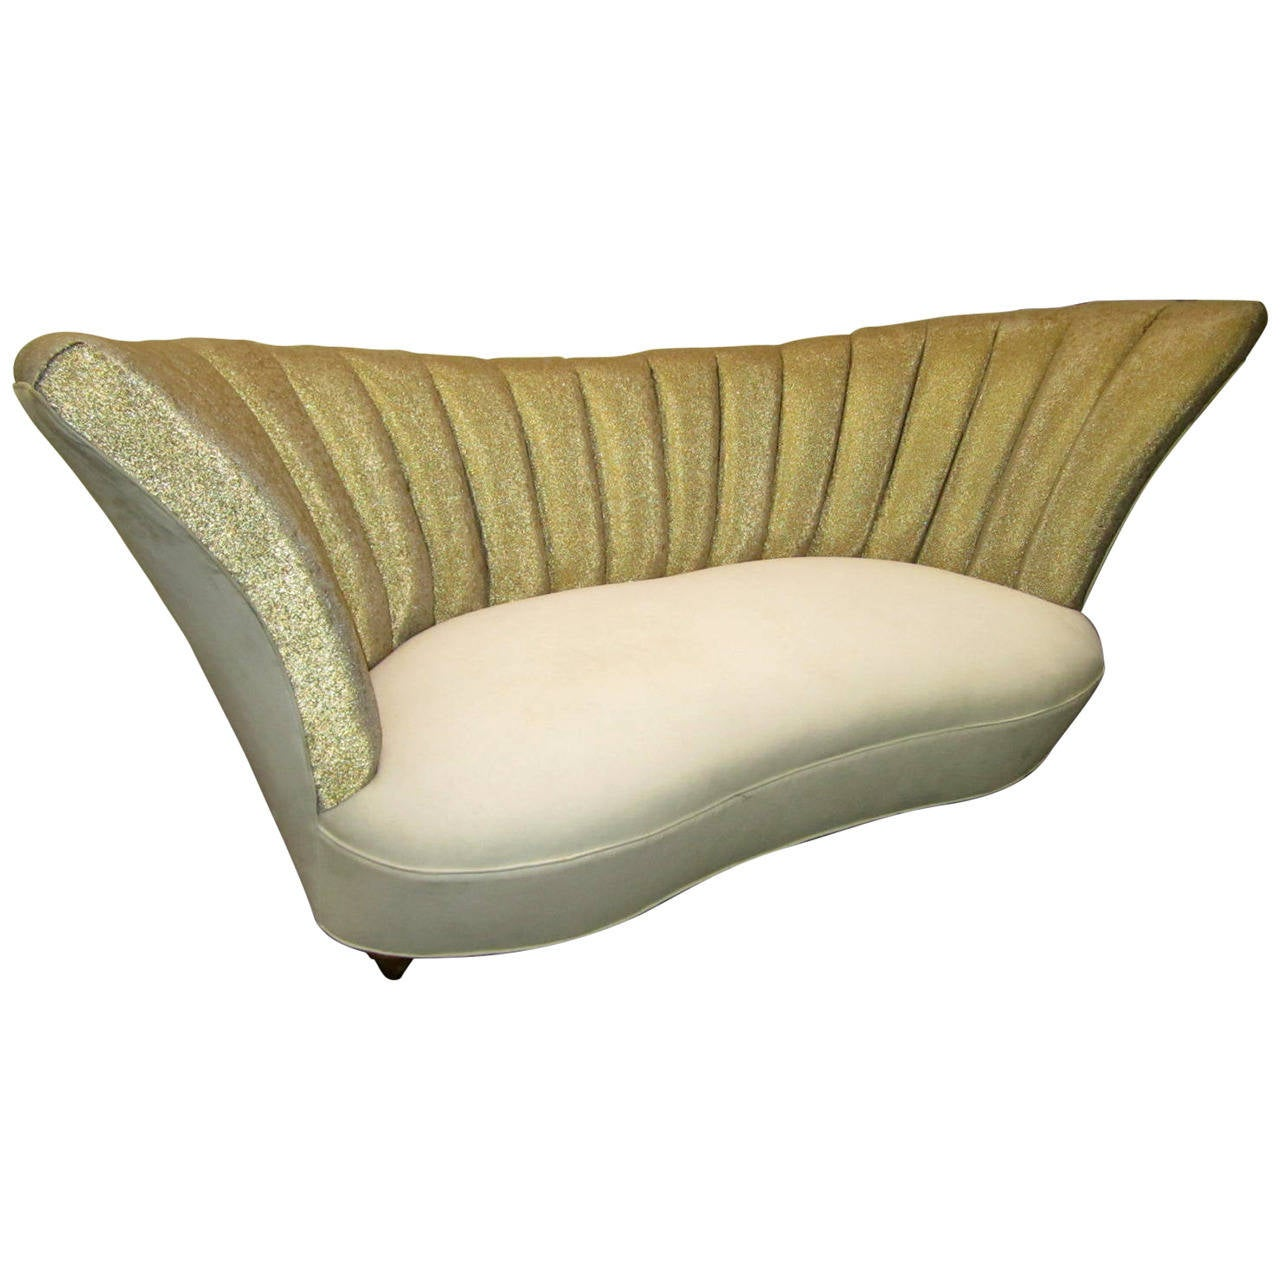 Sparkling Hollywood Regency Column Tufted Loveseat Sofa For Sale At 1stdibs